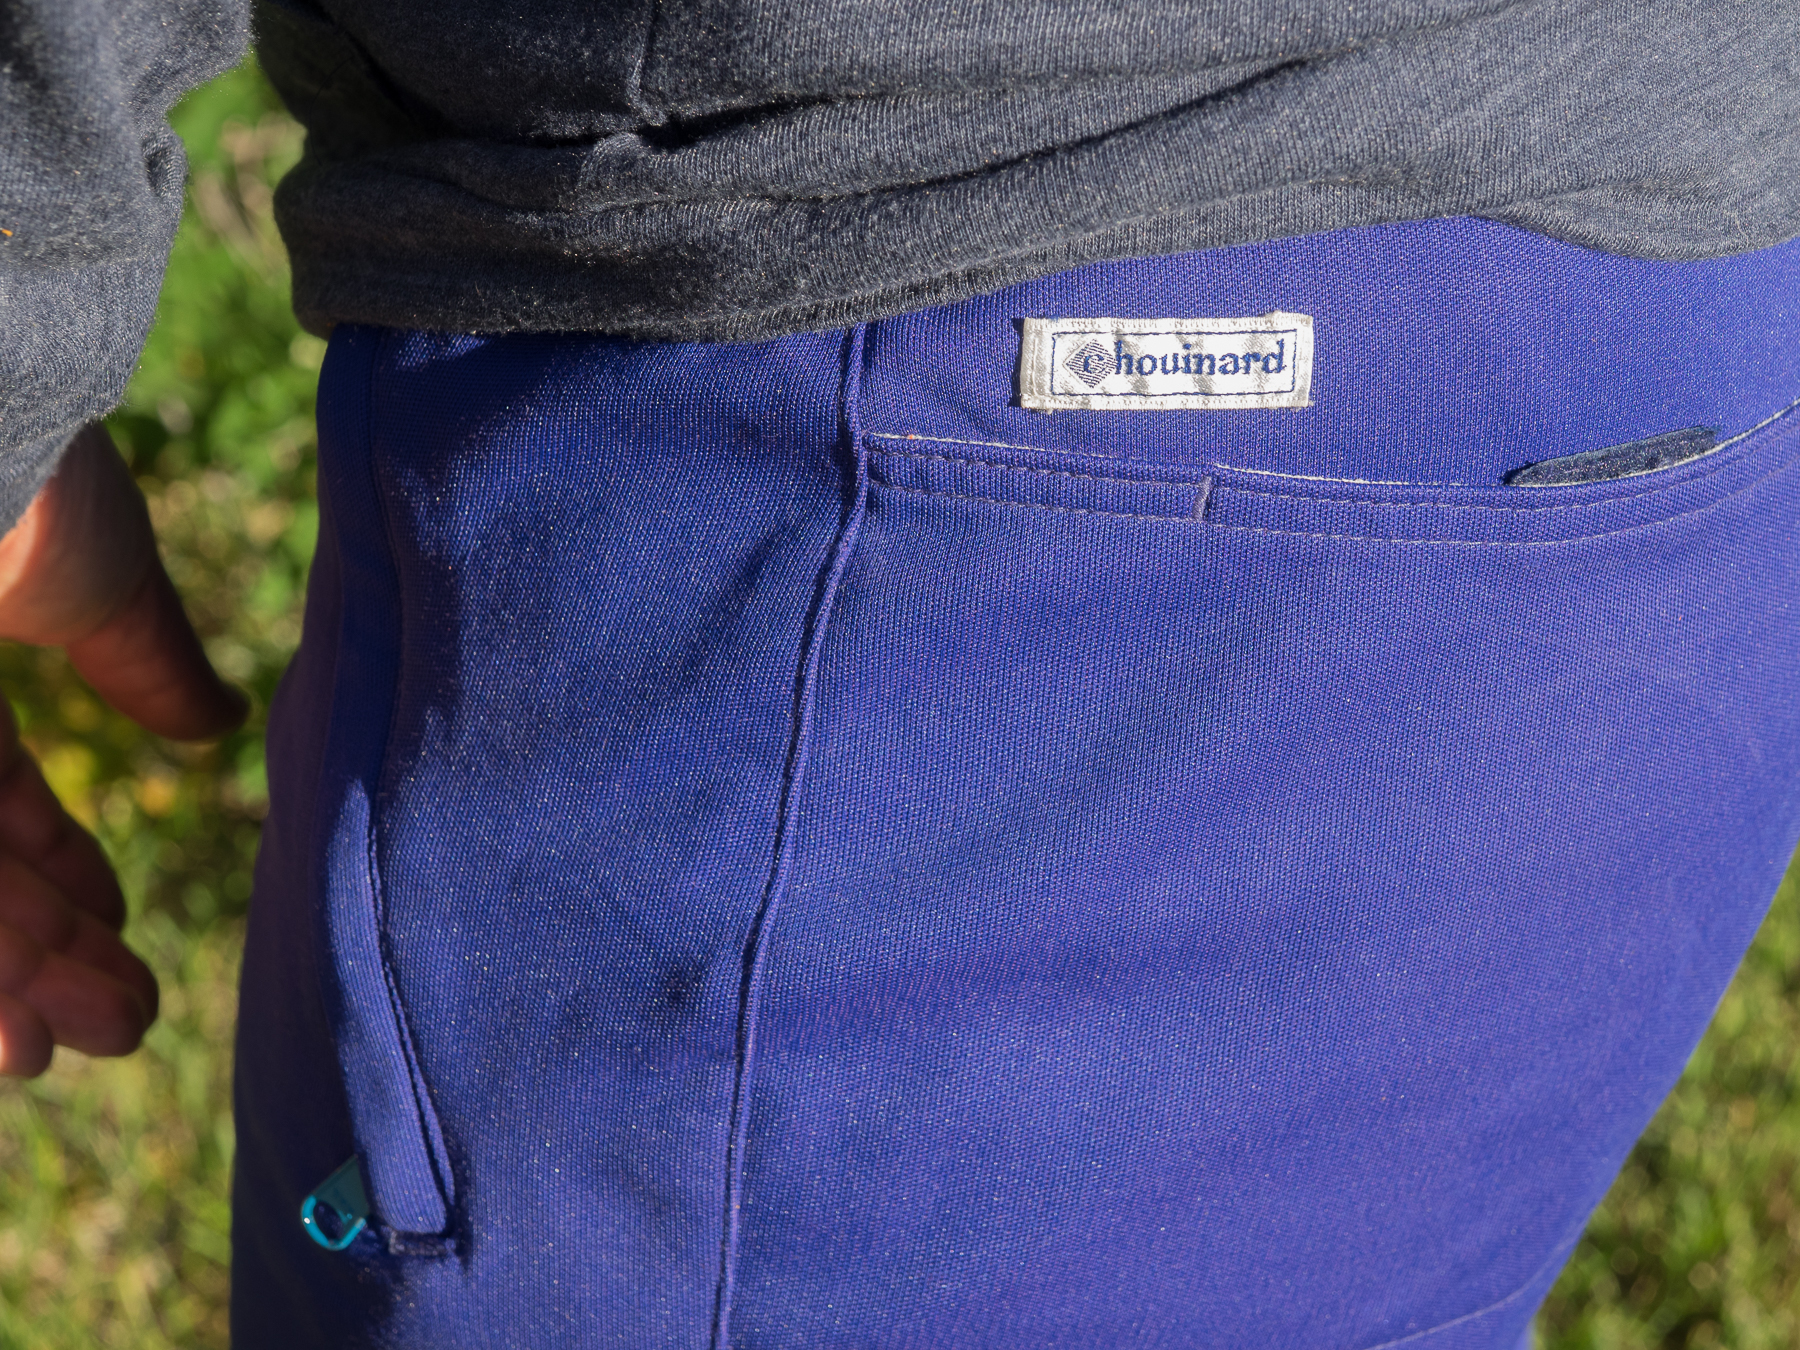 Cotton interior. Nylon exterior. Tough Comfortable. Chouinard Rock Bottoms climbing pants